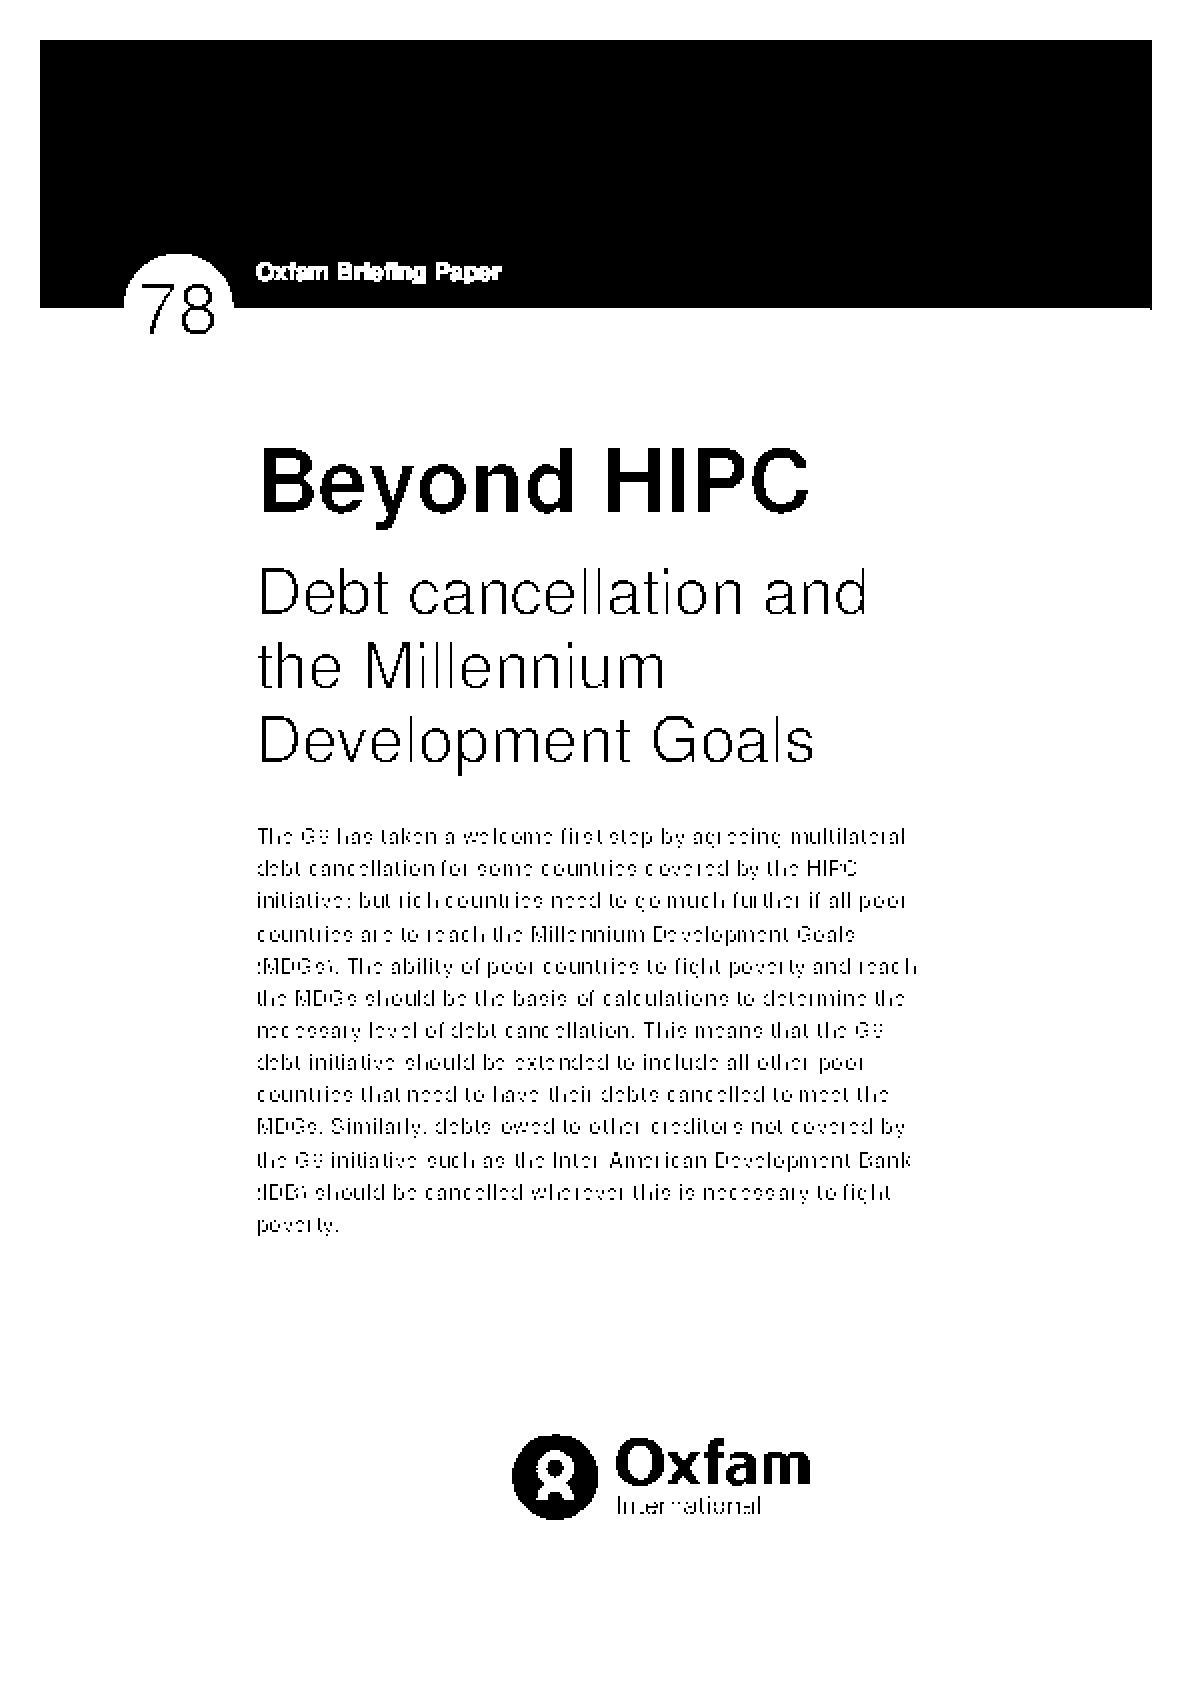 Beyond HIPC: Debt Cancellation and the Millennium Development Goals